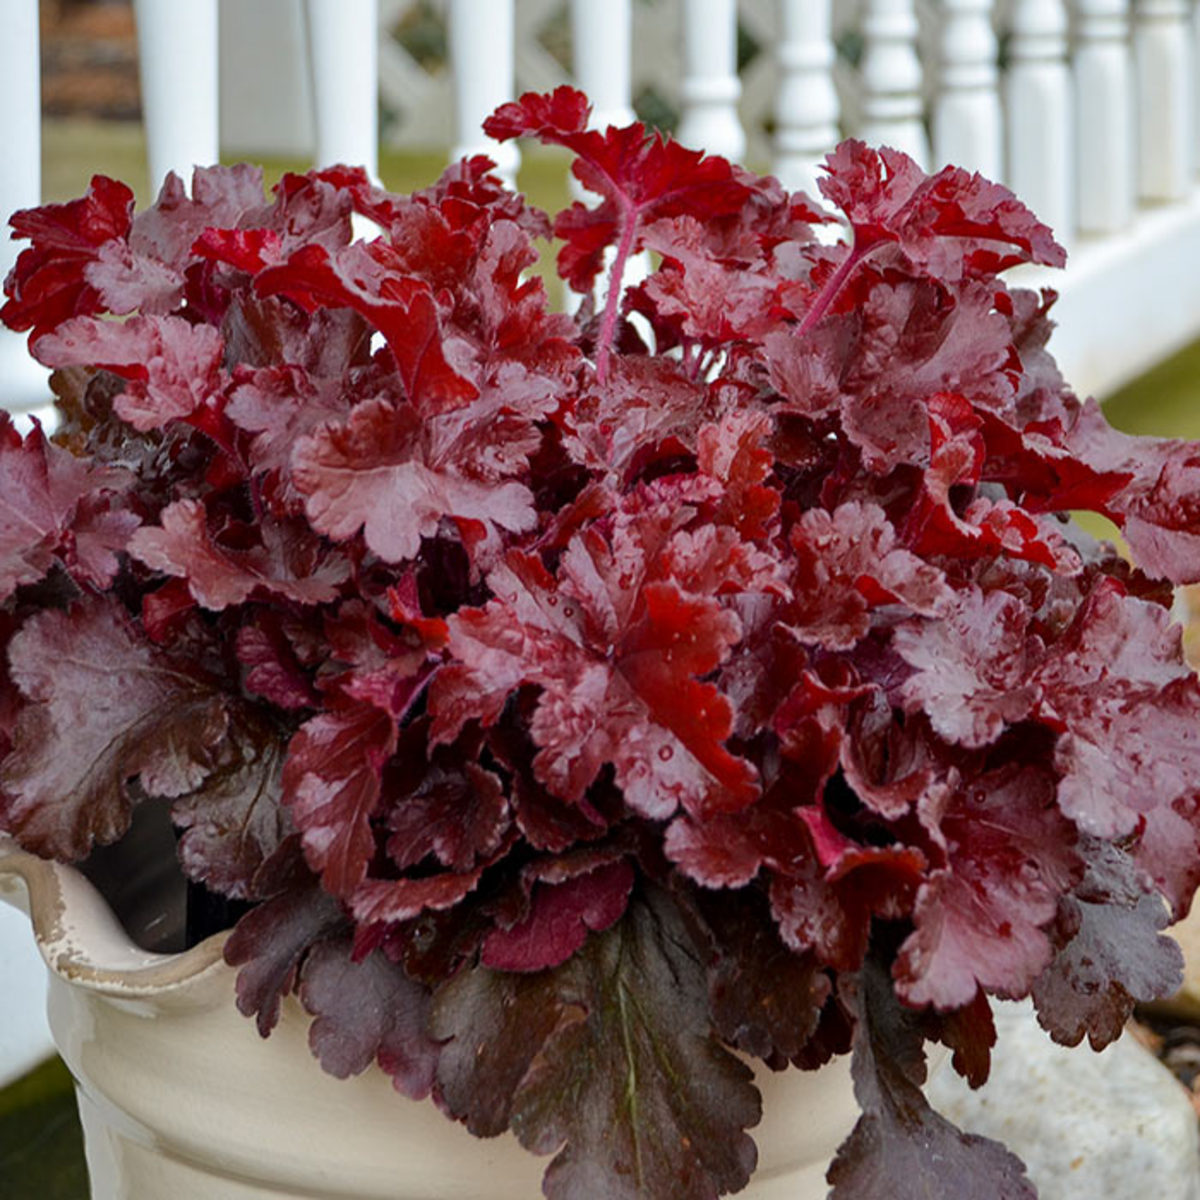 Growing in a container, this Heuchera 'Cherry Truffles' might need some special treatment for the winter. It is hardy to USDA Zone 3 if planted in the ground, but it should be considered hardy only to Zone 5 if it remains in a pot.